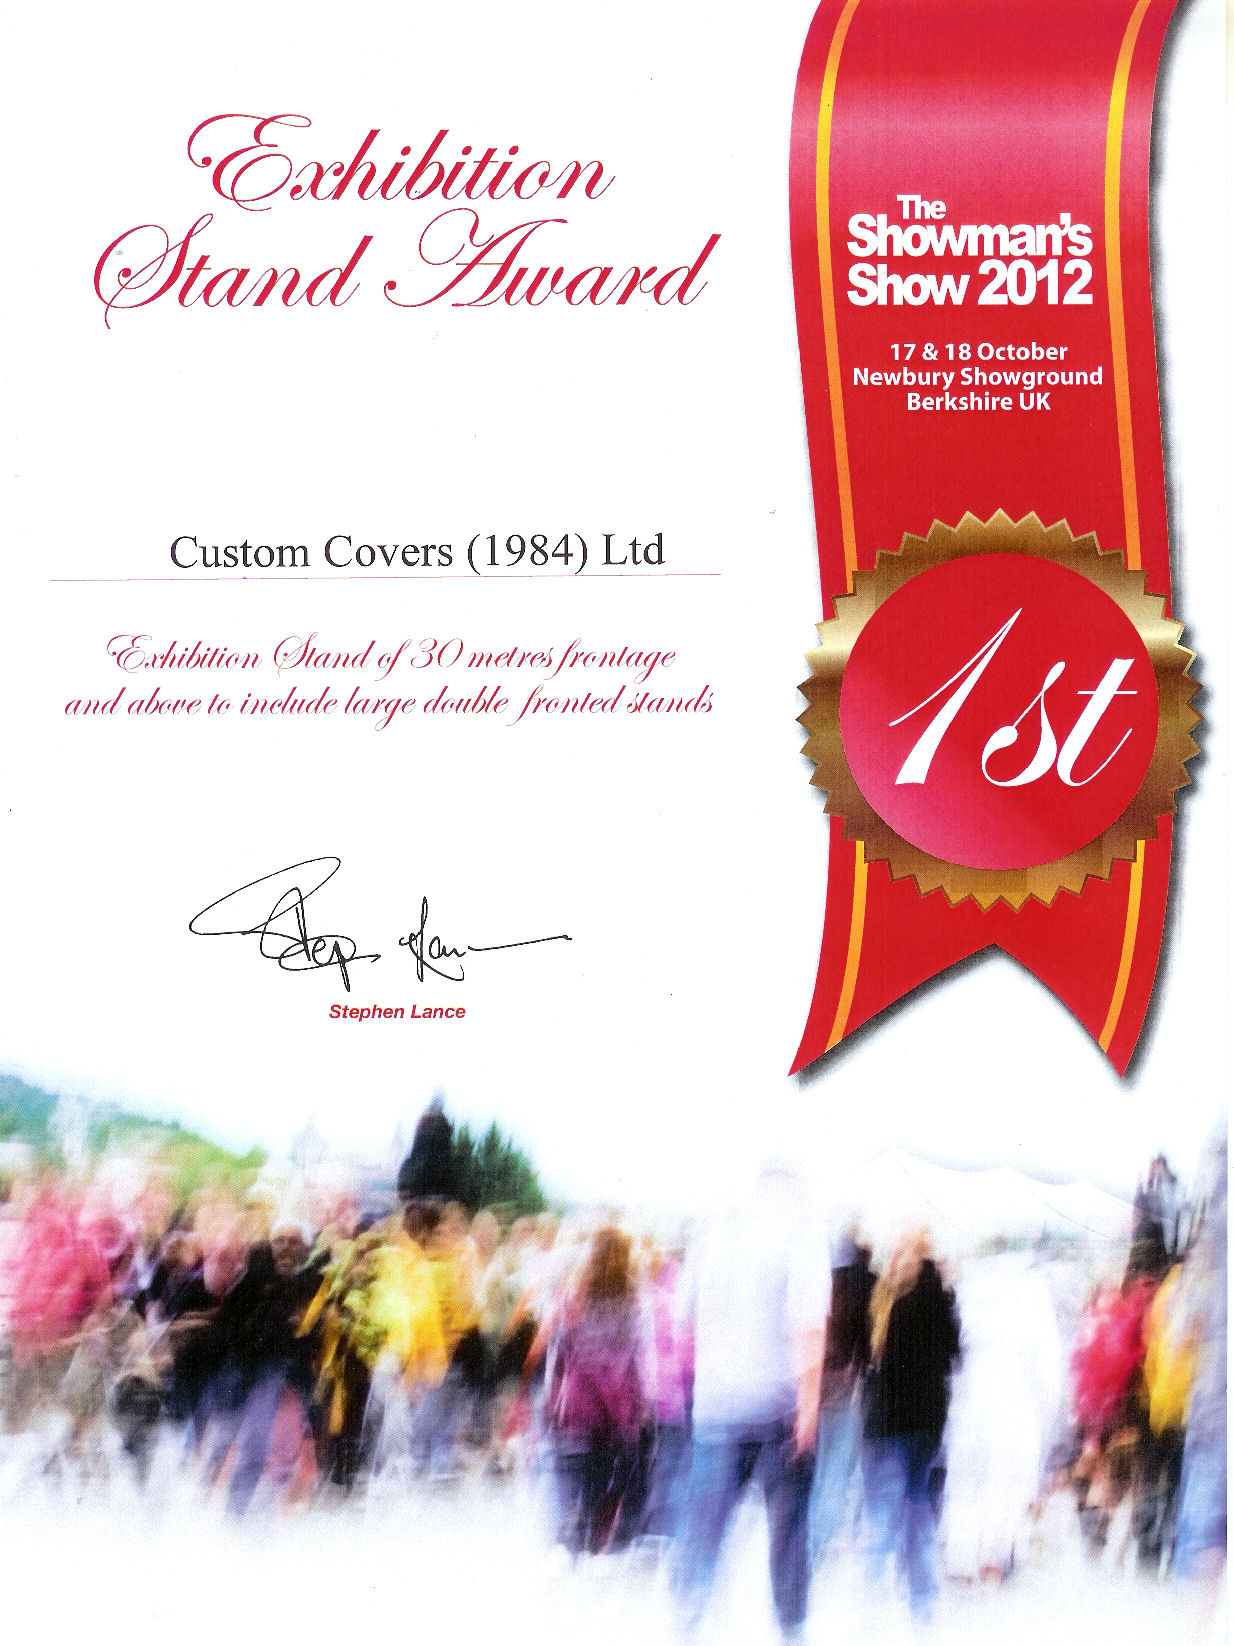 1st prize Showman's Show 2012 Exhibition stand award